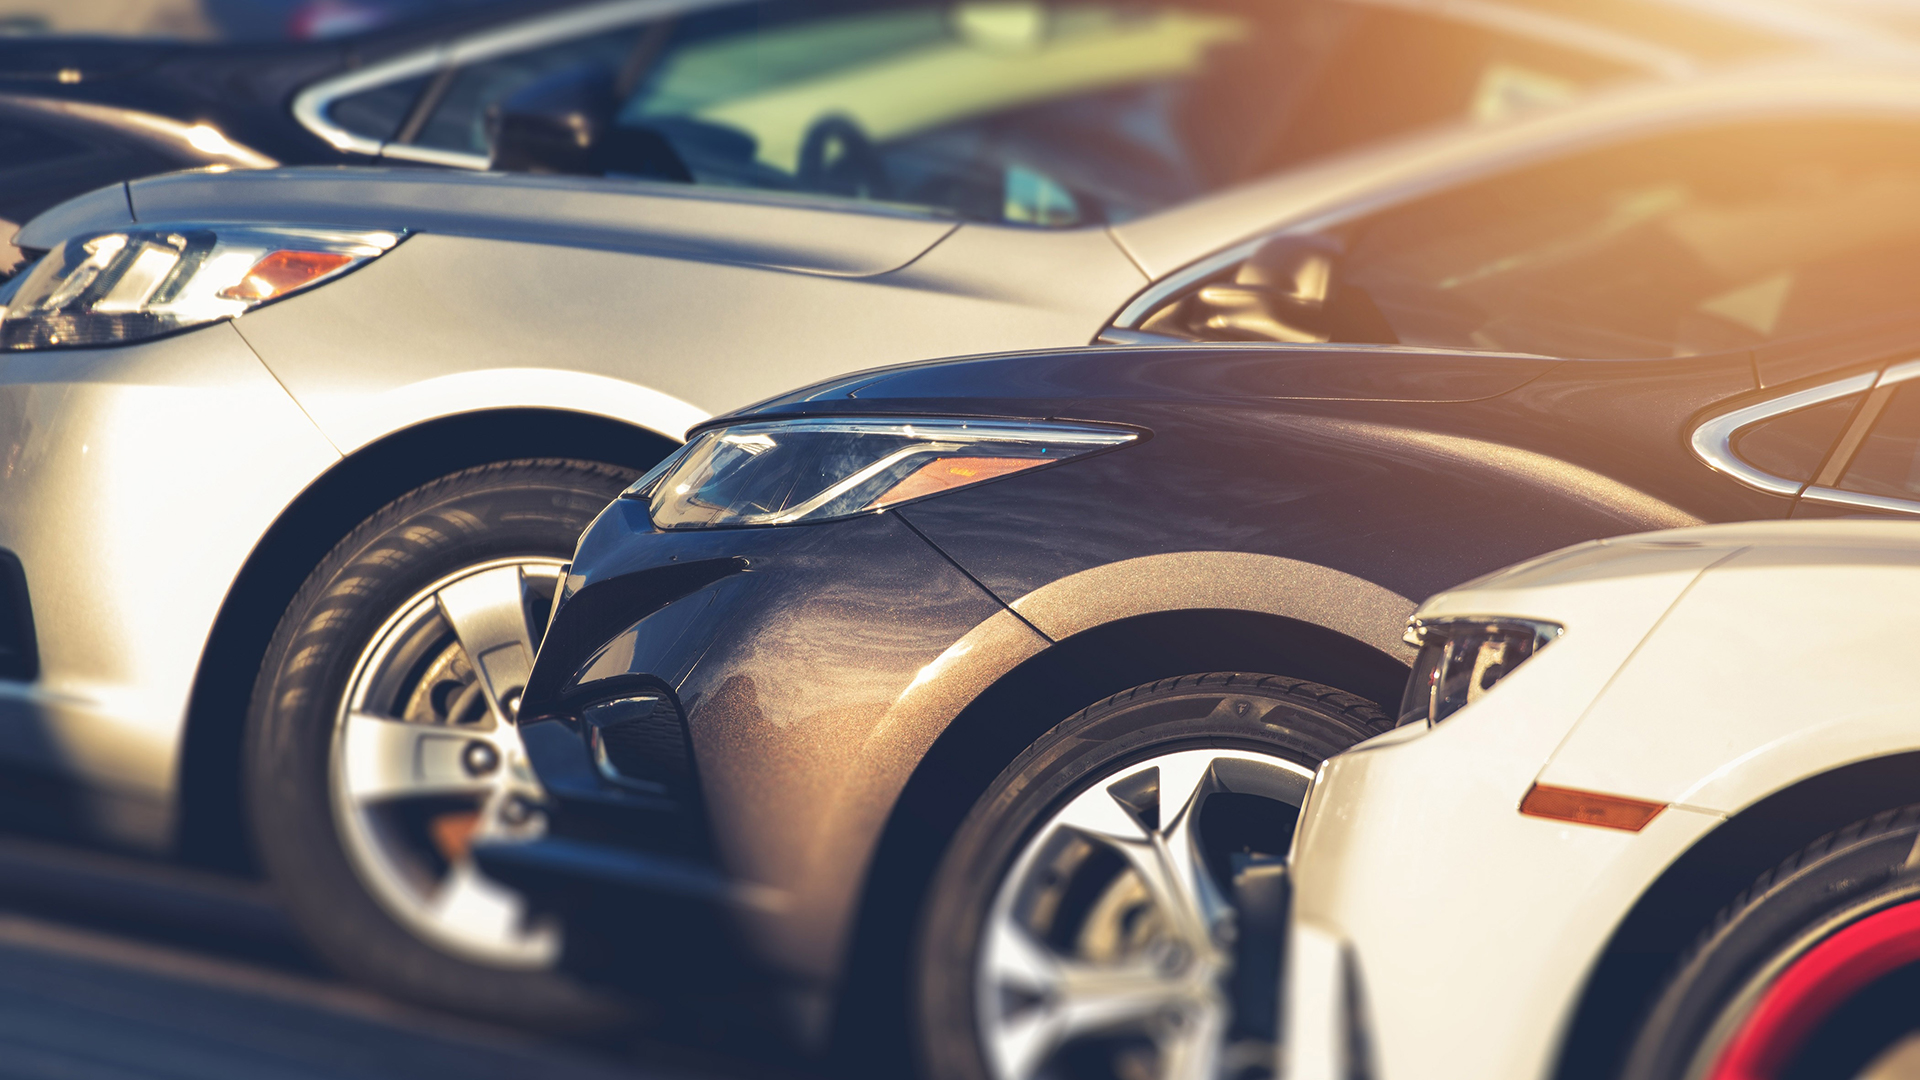 The best way to lease an economy car leasing